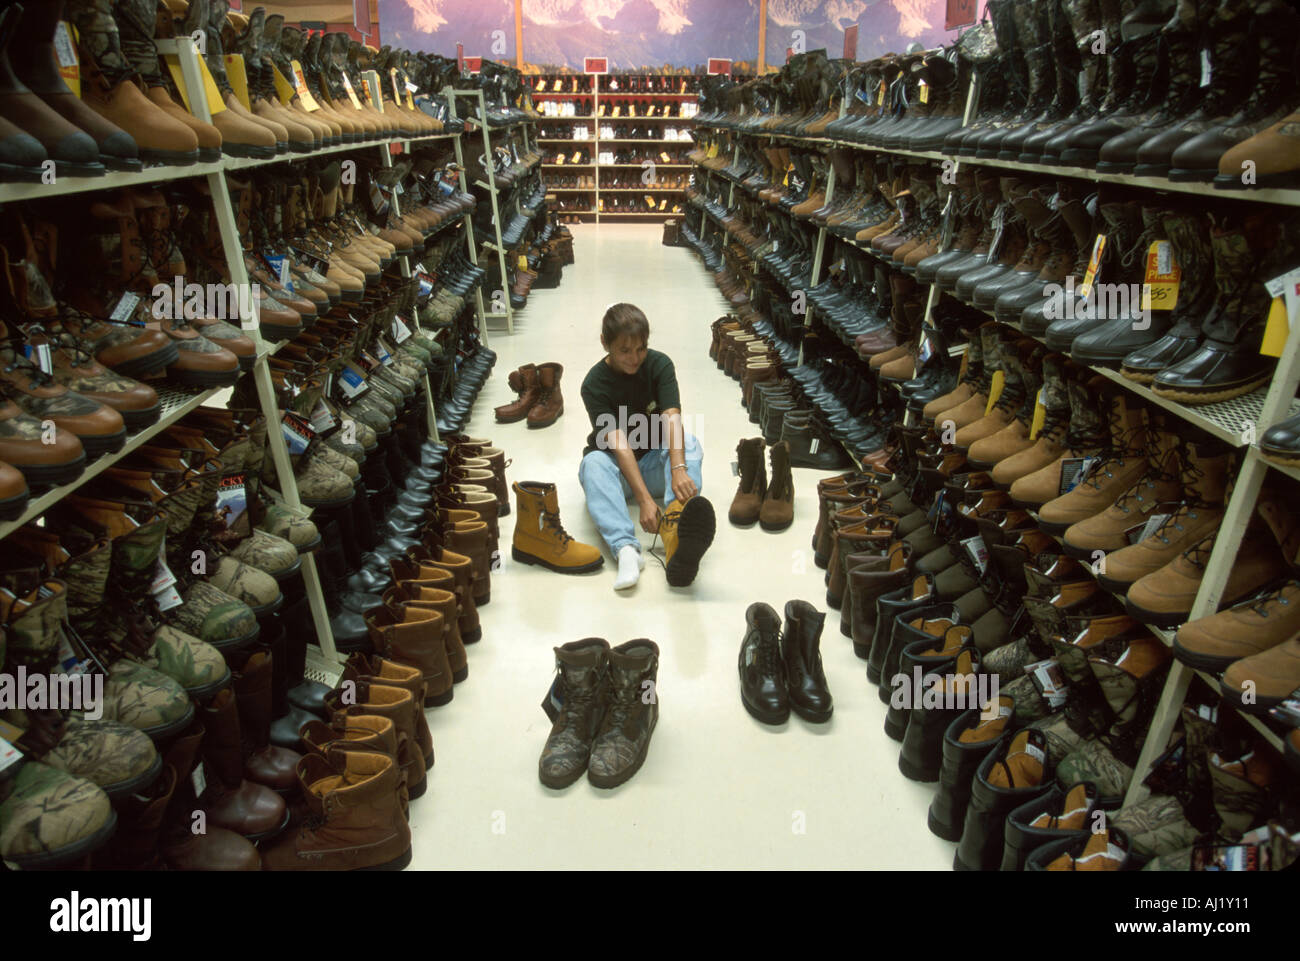 Ohio Nelsonville Rocky Shoes & Boots Factory Outlet shopper in ...